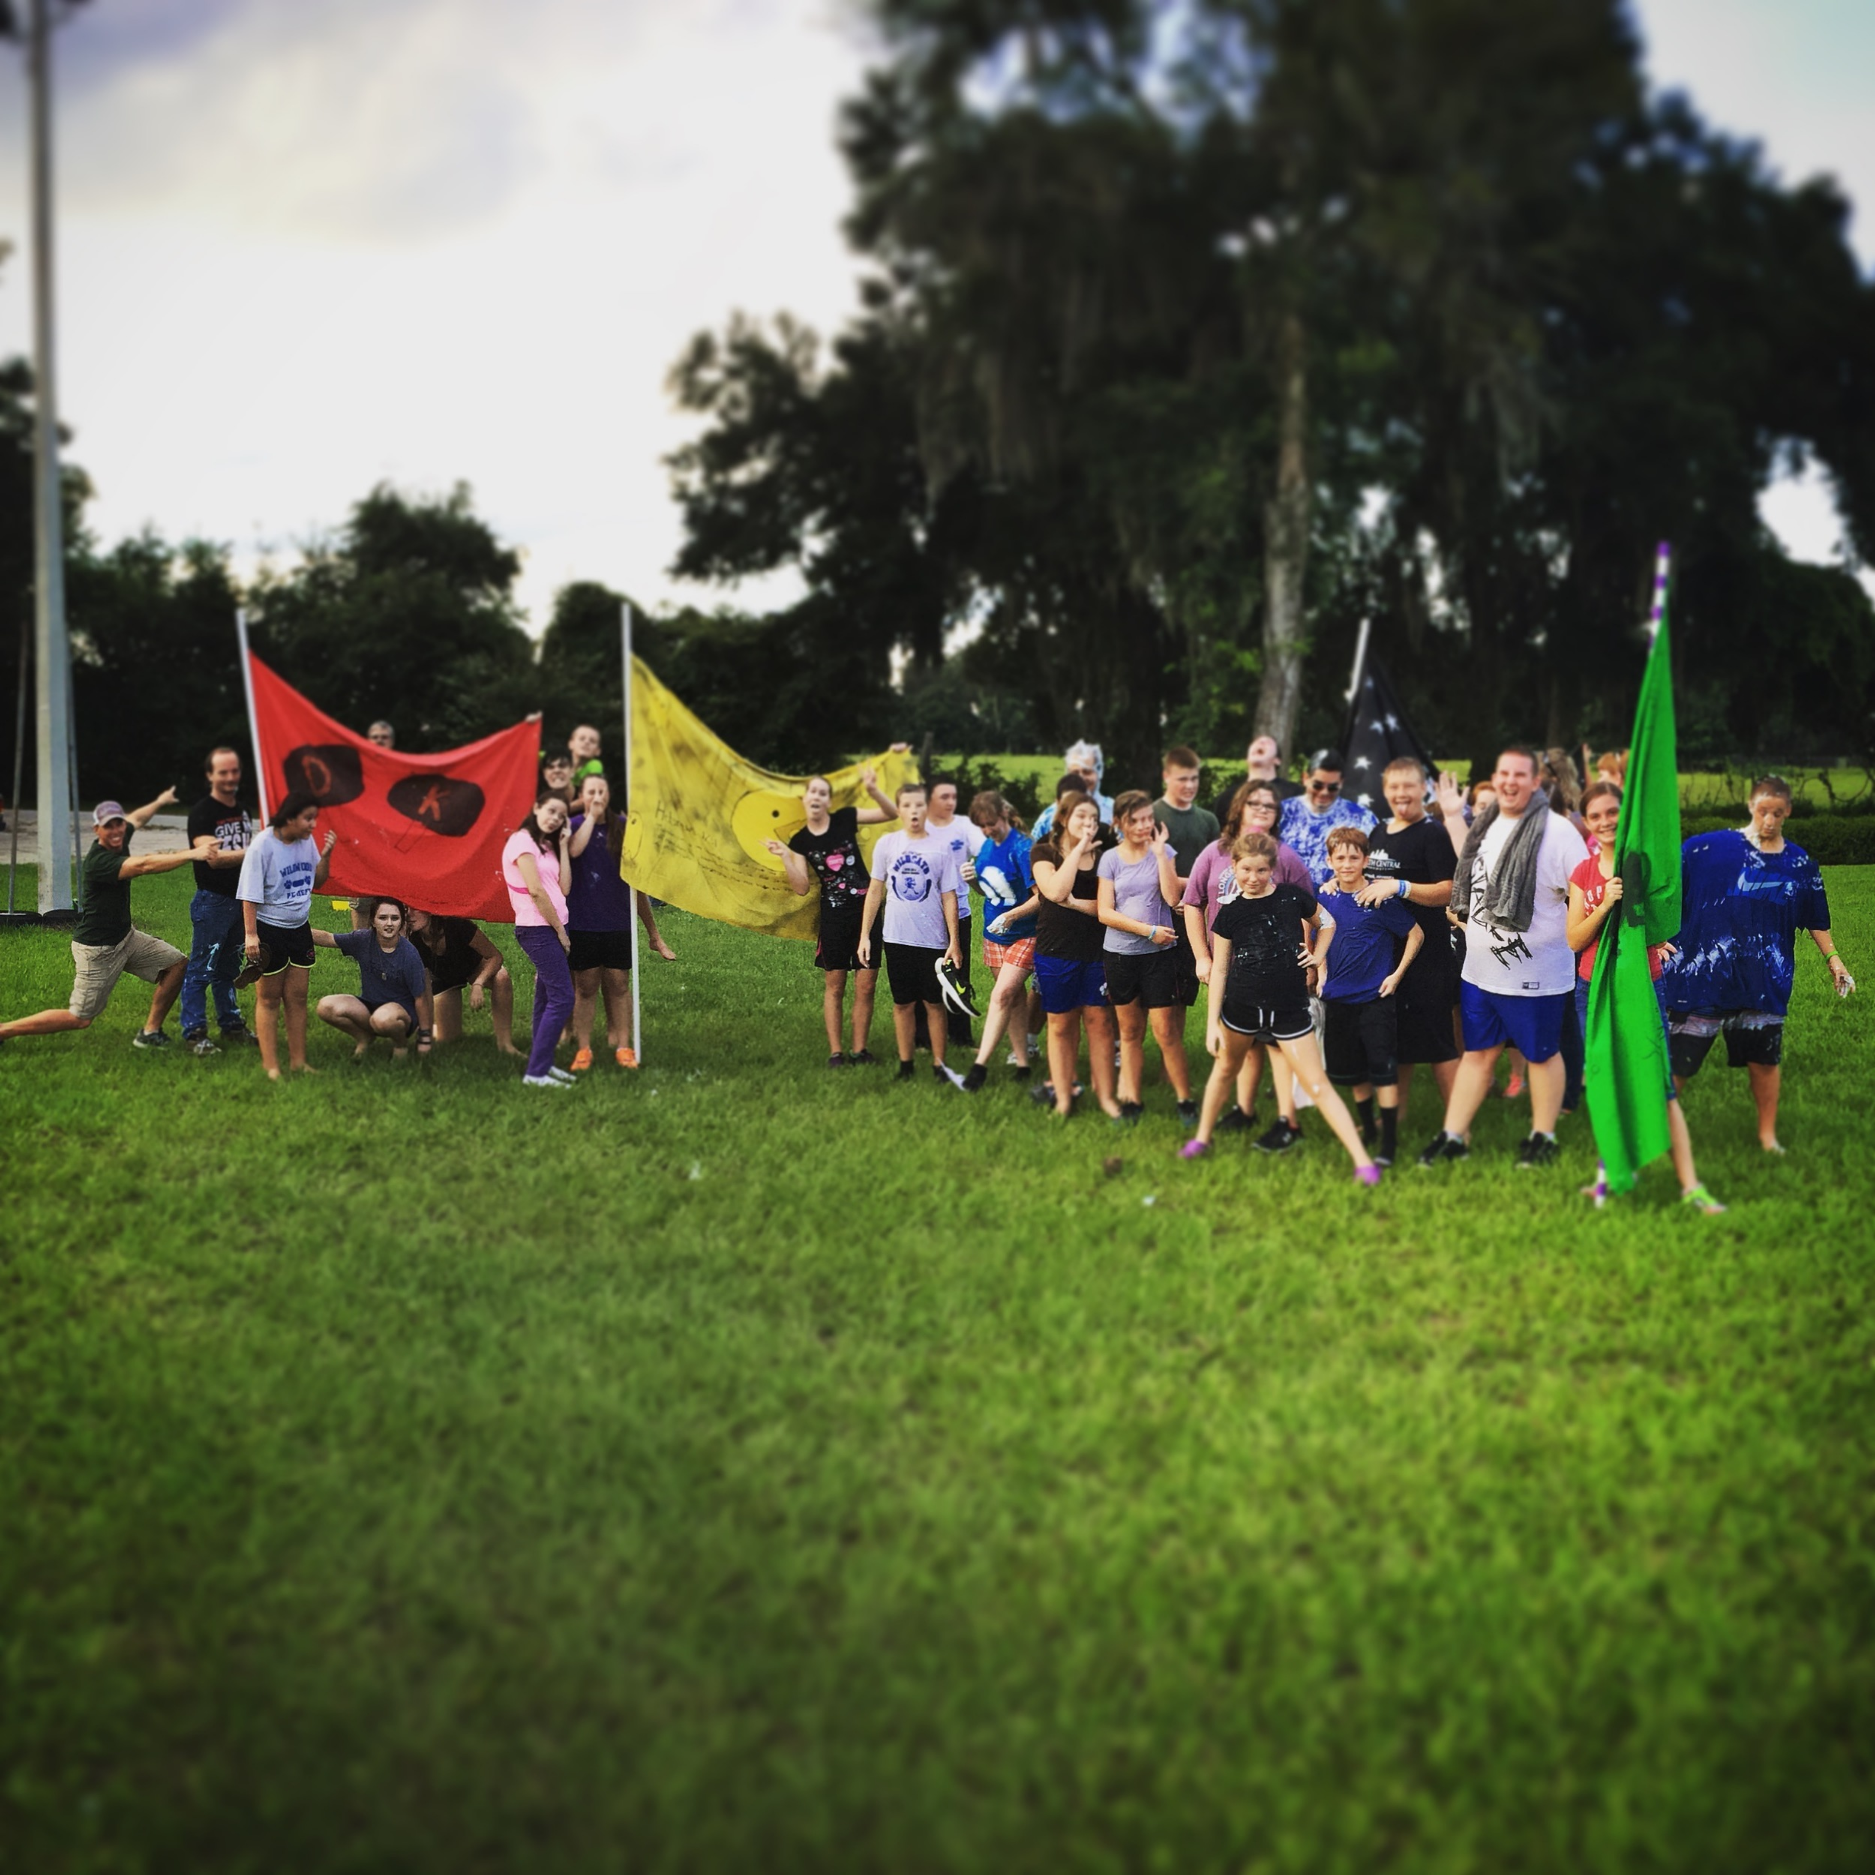 Outdoor-picture-of-teenagers-holding-team-flags-and-having-fun